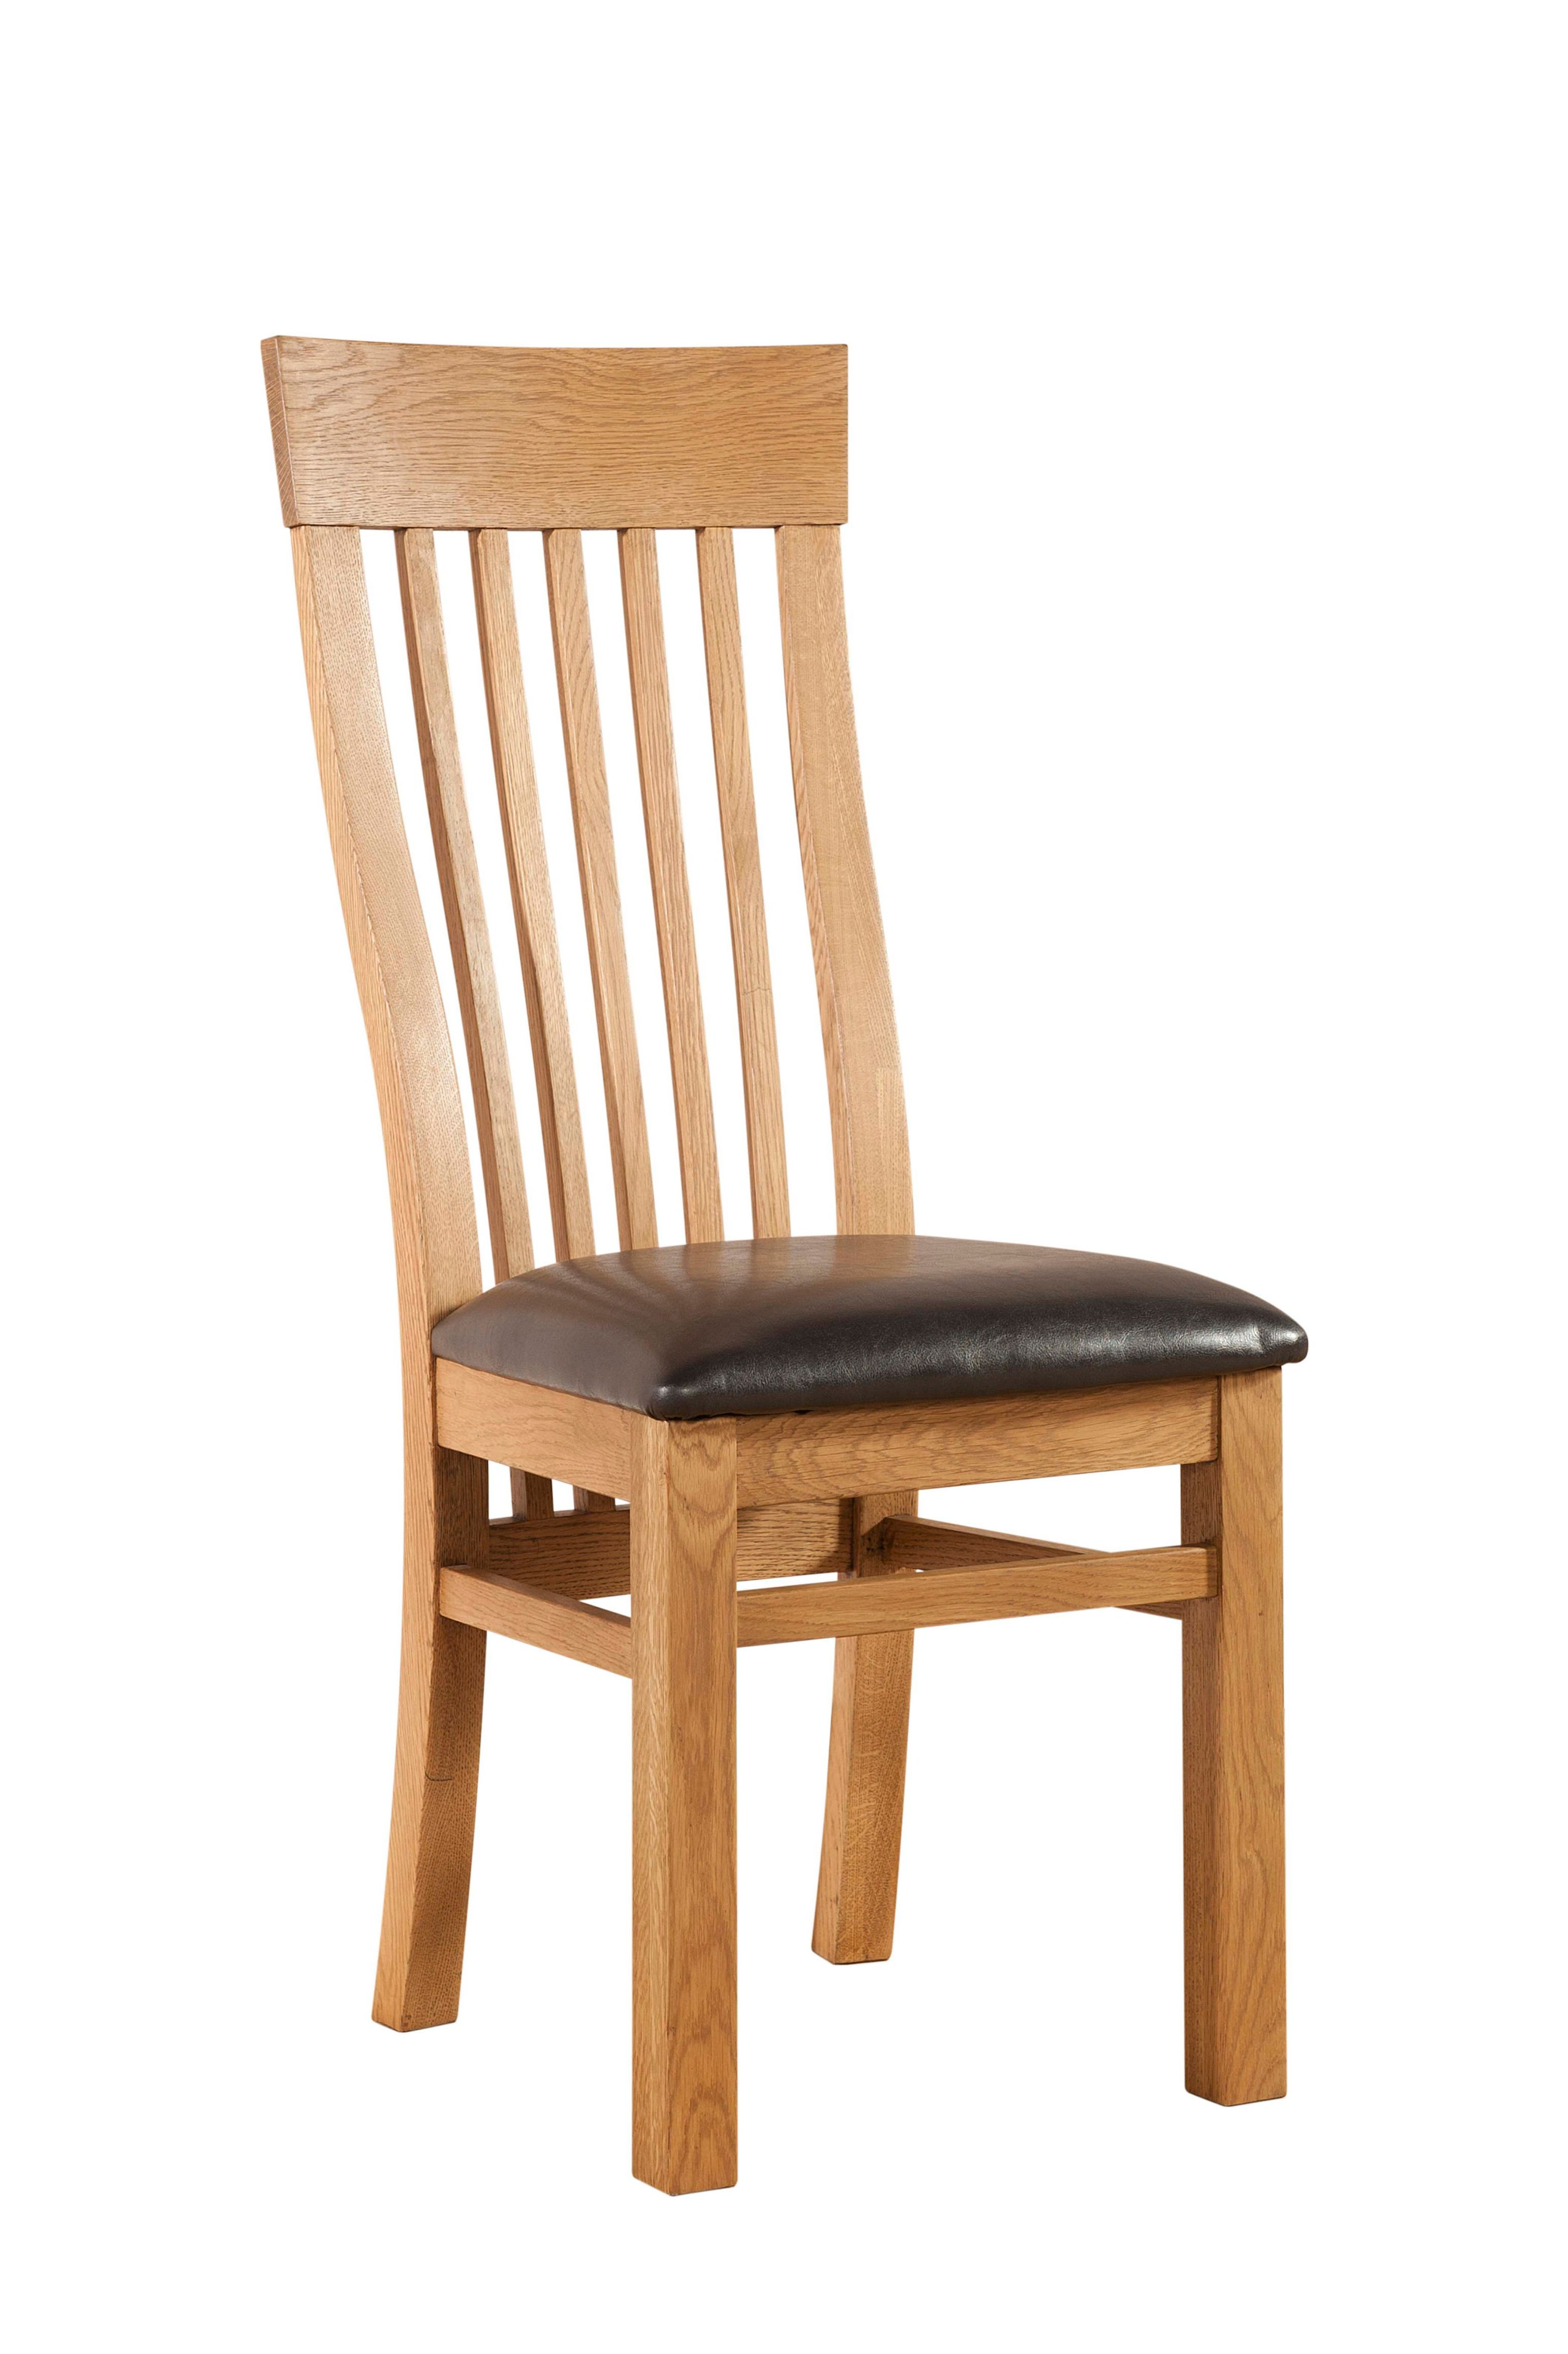 SUMMERFIELD Curved Back Dining Chair